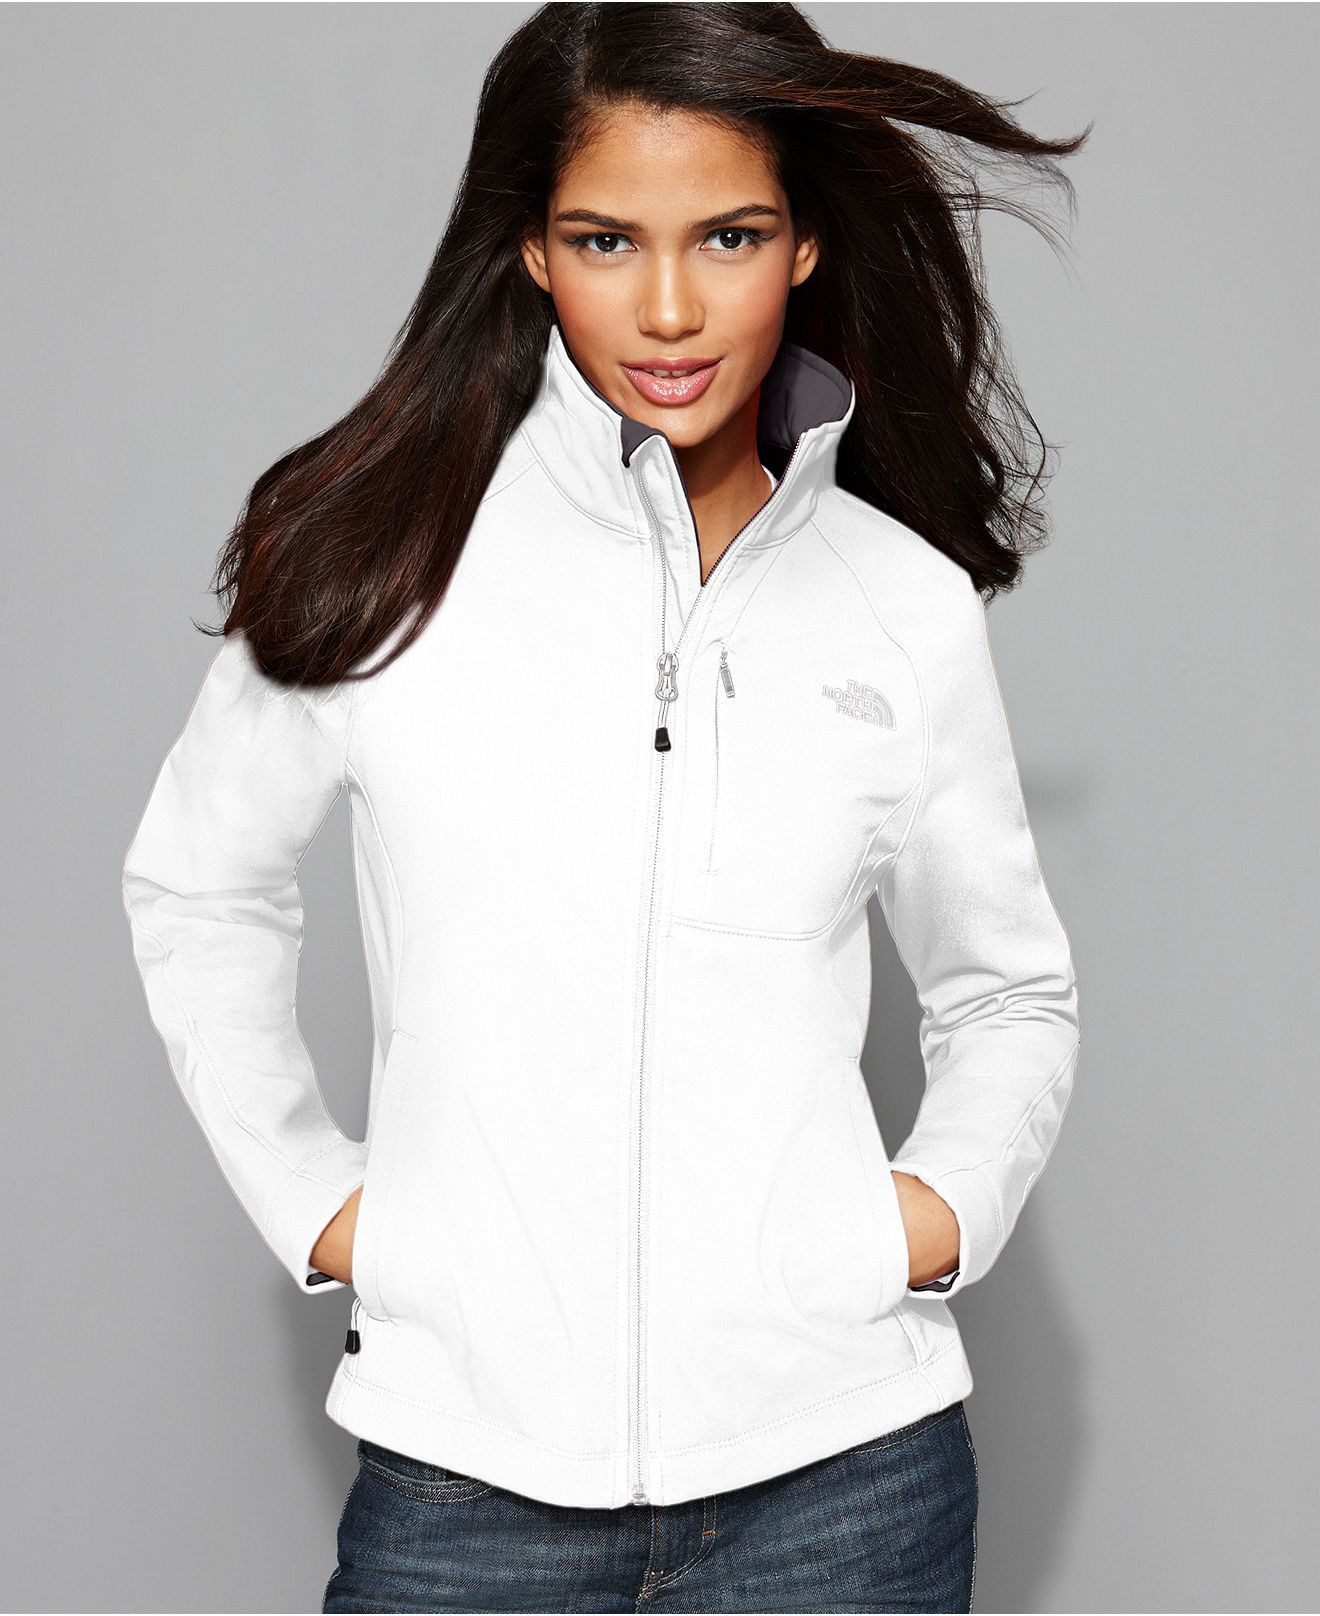 The North Face Jacket North Face Jacket Blazer Jackets For Women Jackets [ 1616 x 1320 Pixel ]